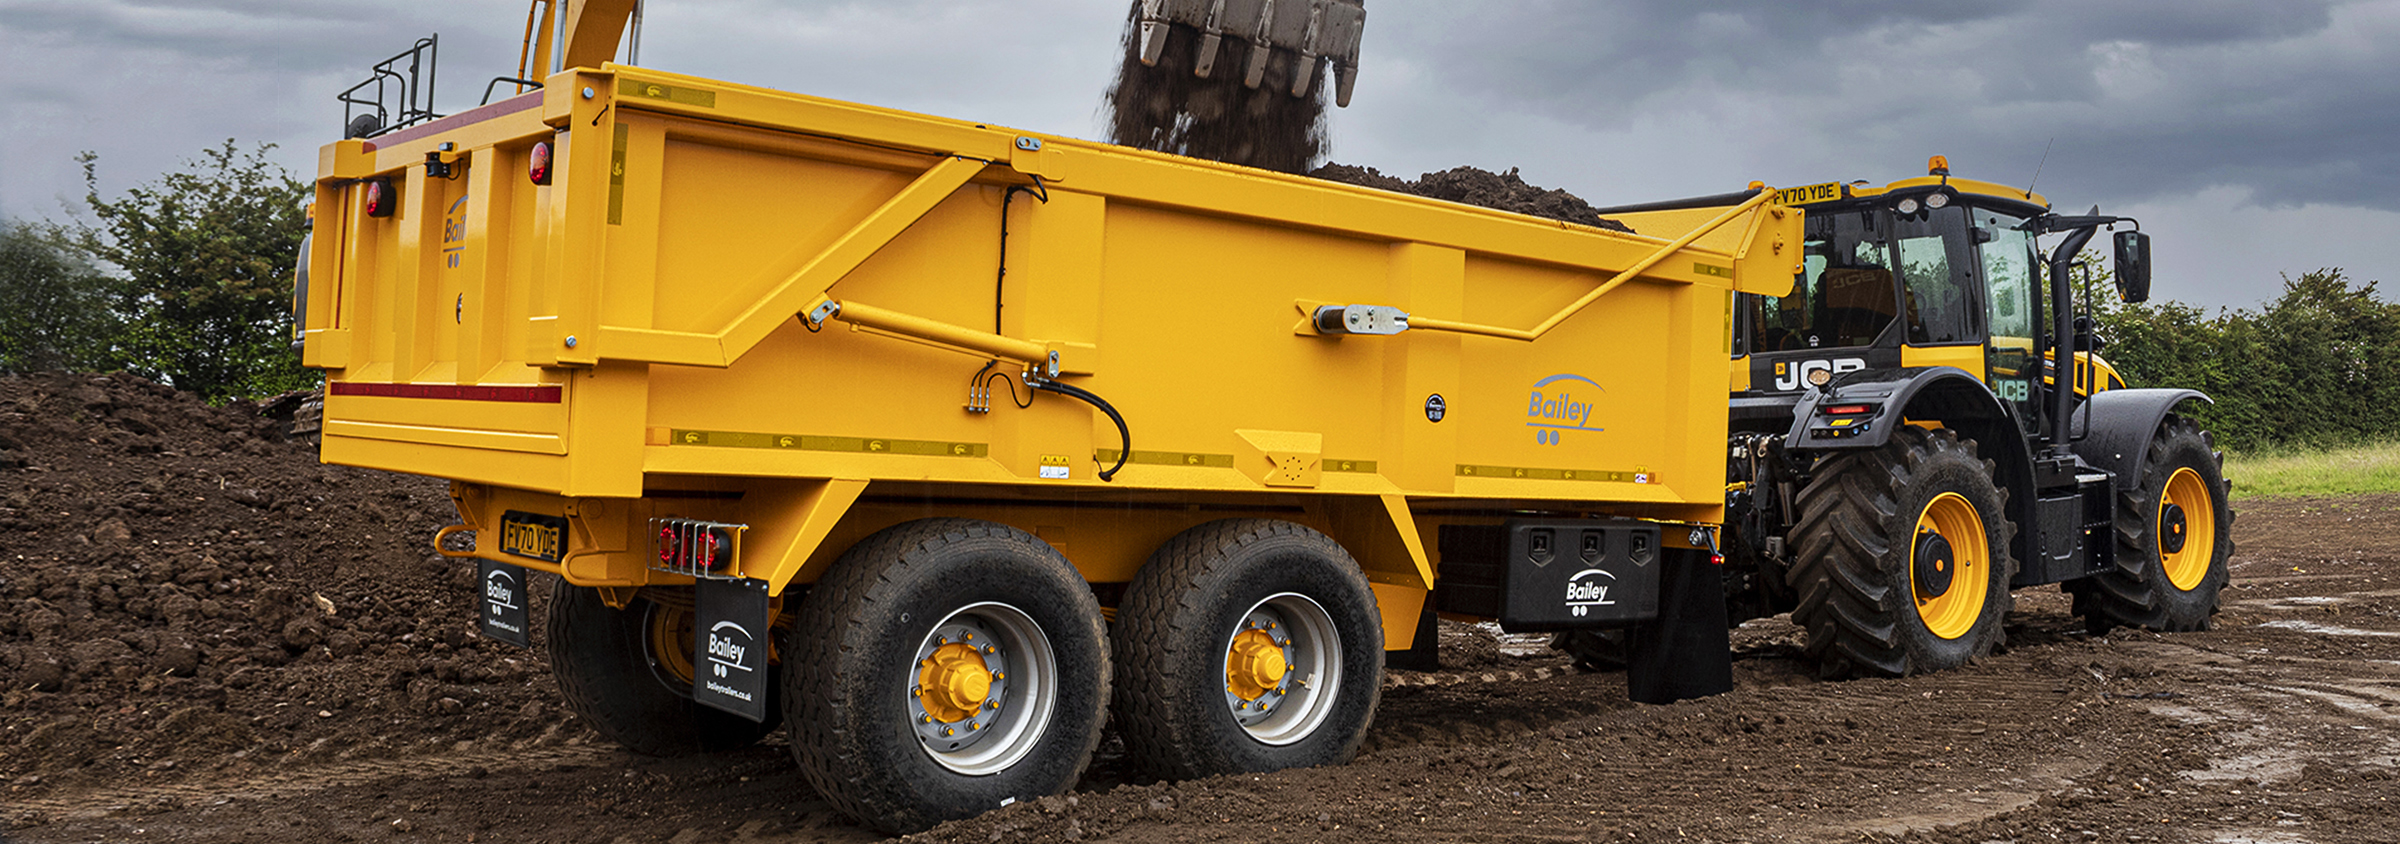 Contract Tipper Trailers